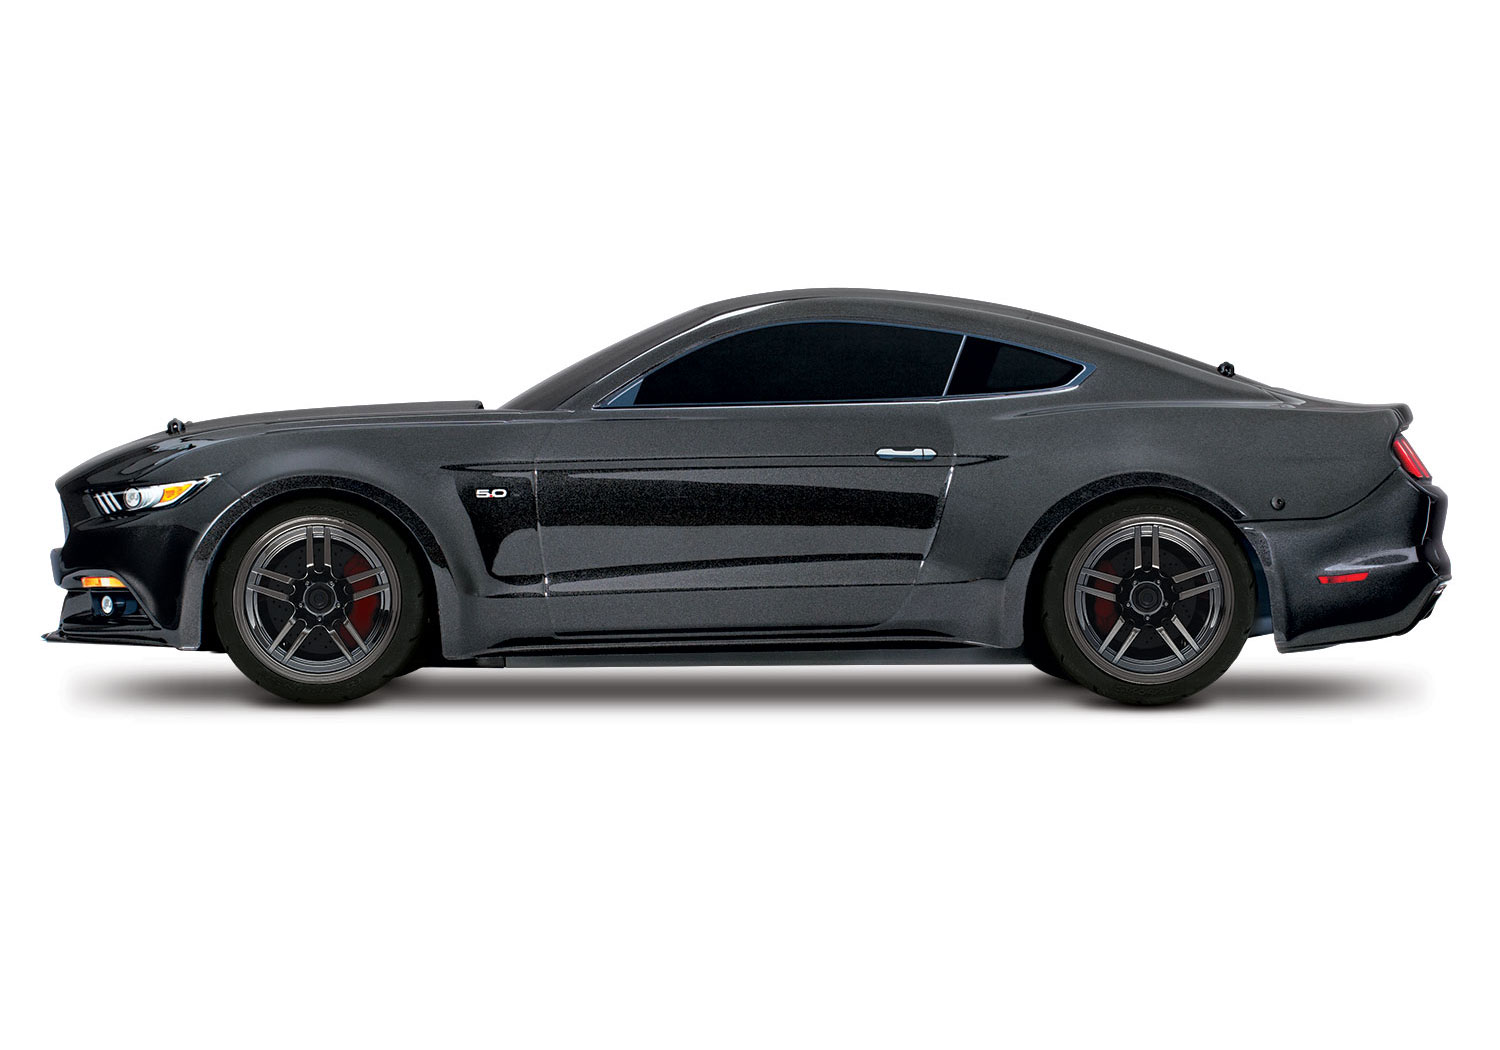 ford gt traxxas with Rc Ford Mustang Gt Traxxas 110 Scale on Watch furthermore Rc Ford Mustang Gt Traxxas 110 Scale as well Protoform Chevrolet Corvette C7 R Clear Body 2 besides Scalextric Ford GT40 Slot Car together with Rc Ford Mustang Gt Traxxas 110 Scale.